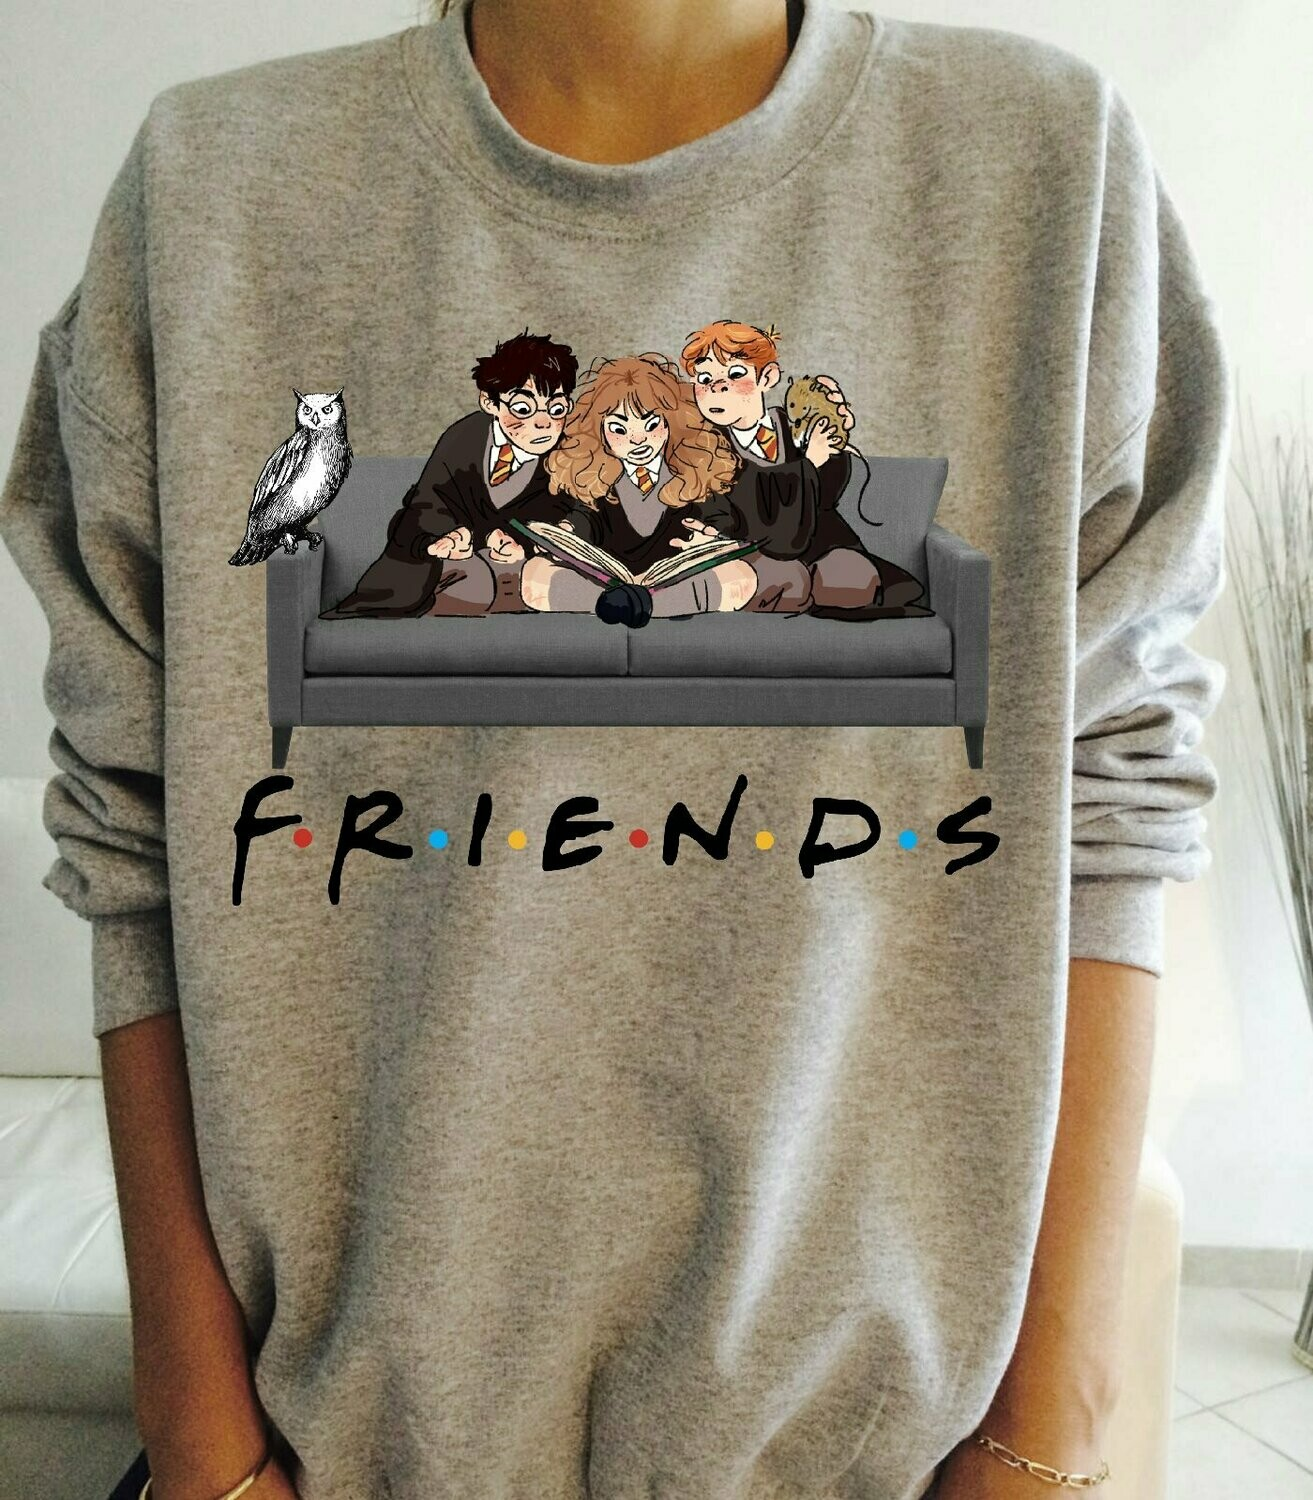 Best of Friends Harry Potter TV Show TV Cinema HBO Novelty Logo Funny T-Shirt Huge Fan Of Harry Potter, best gift for friends T-shirt, huge fan harrypotter, harry potter, huge fan of potter, potter hb